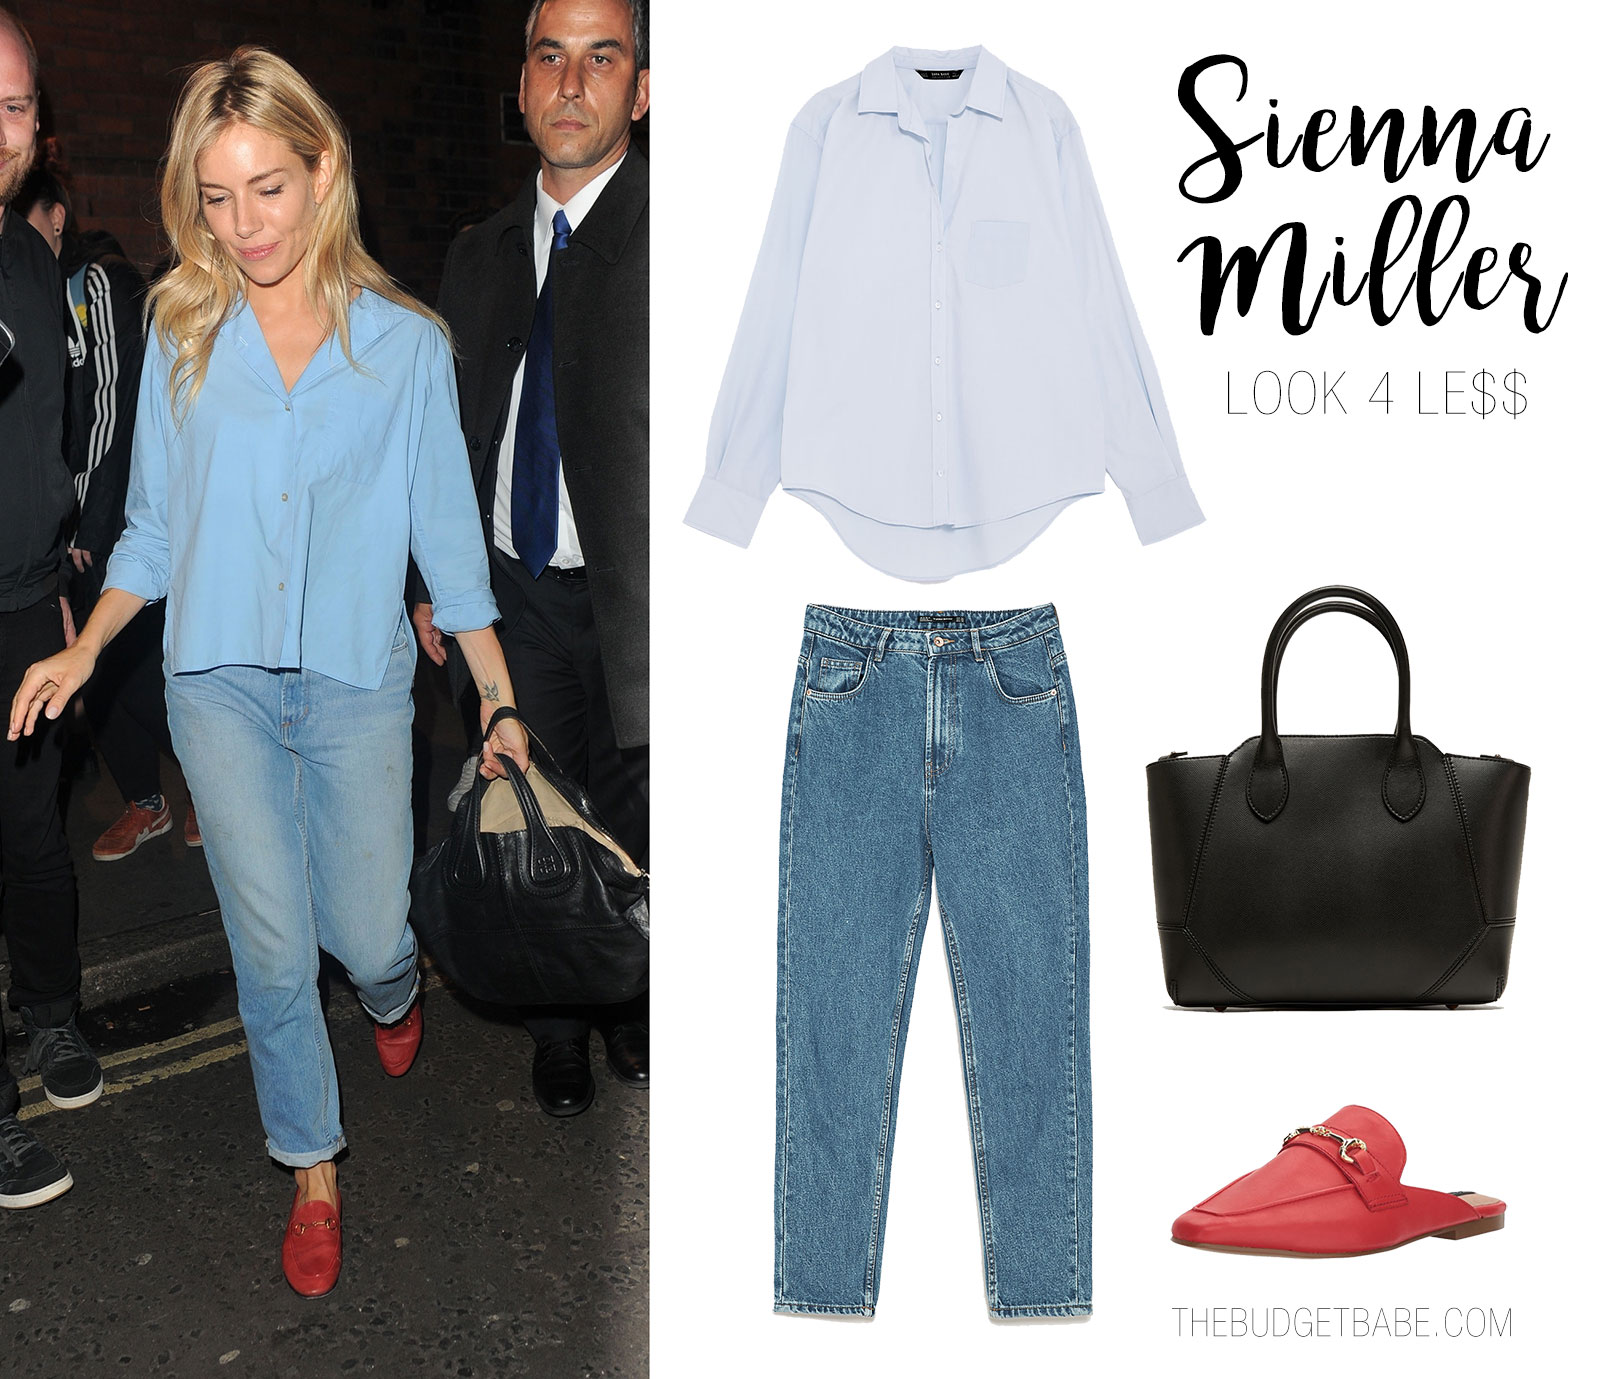 Sienna Miller's minimal mom jeans and red loafers look for less